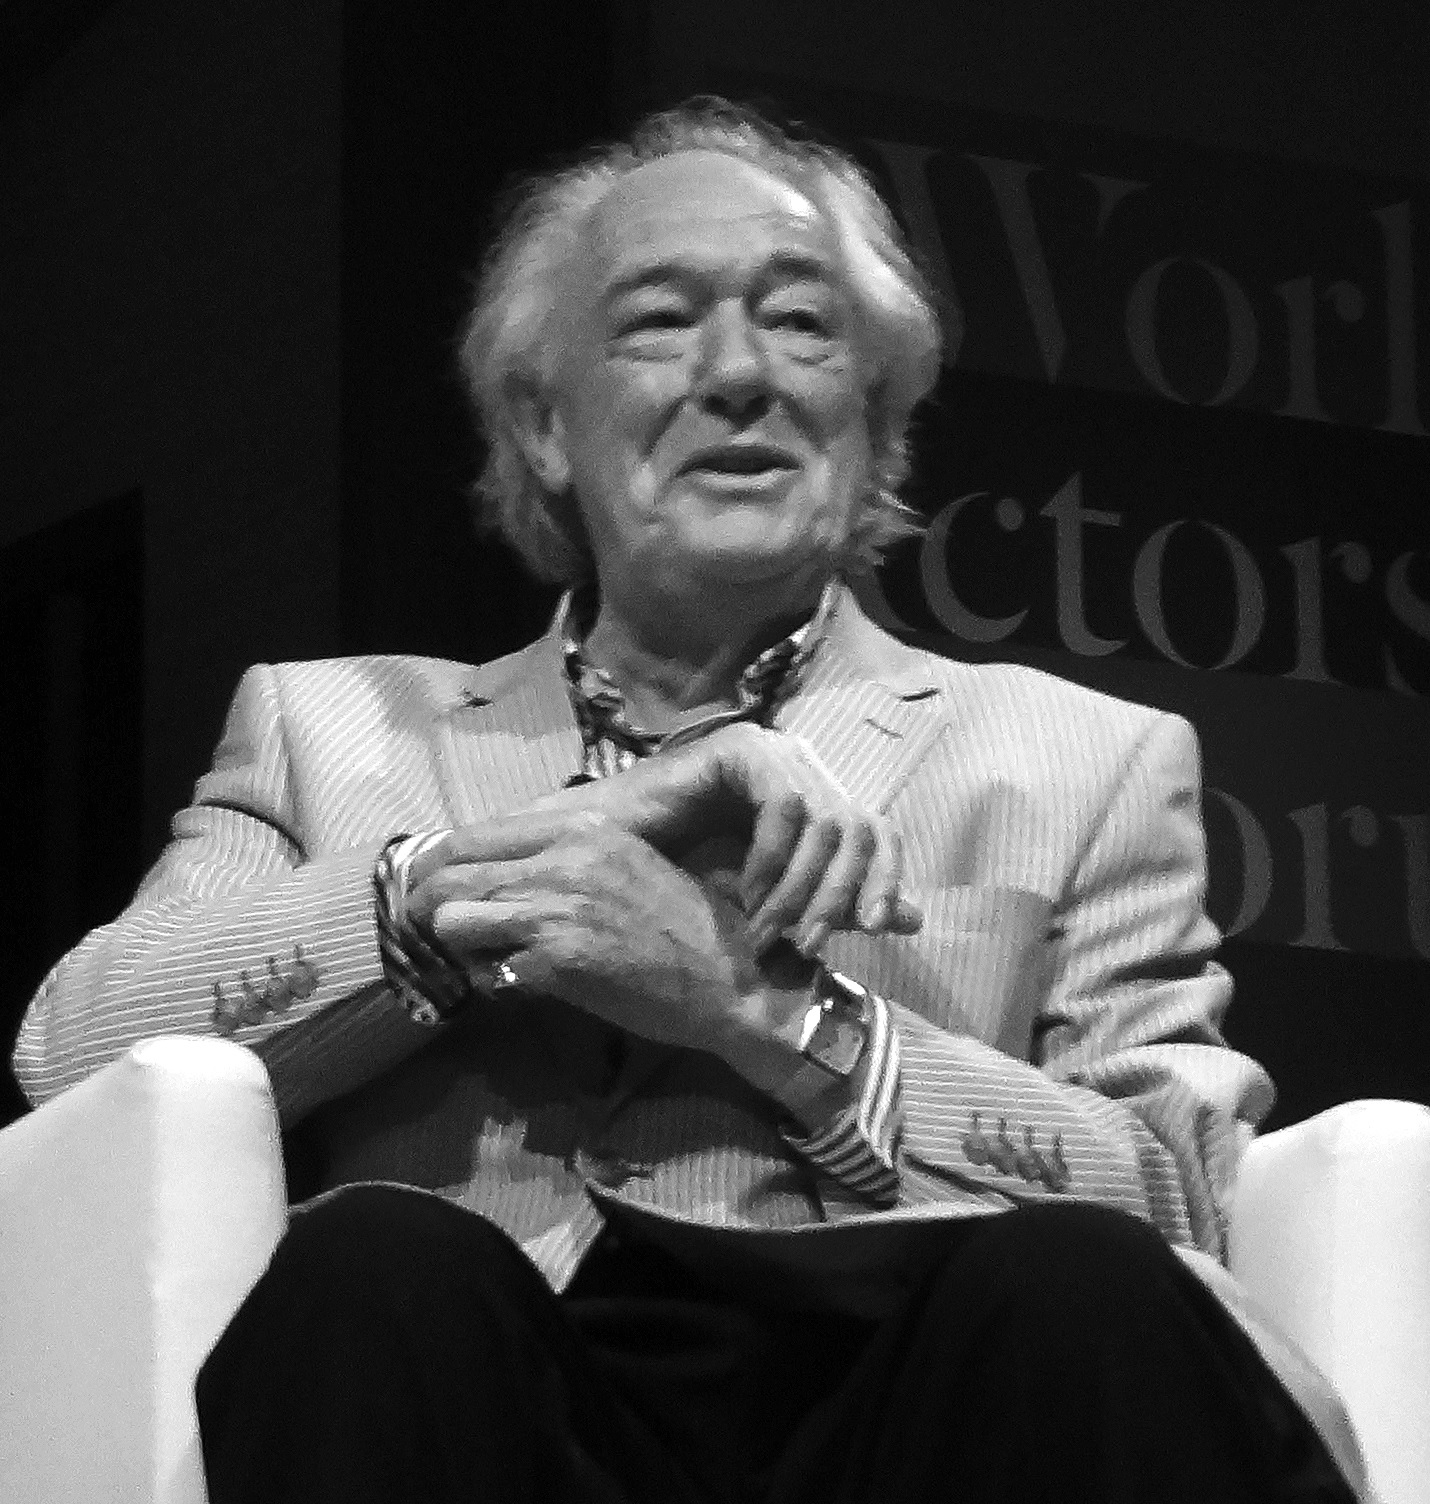 The 77-year old son of father Edward Gambon and mother Mary Hoare Michael Gambon in 2018 photo. Michael Gambon earned a  million dollar salary - leaving the net worth at 15 million in 2018